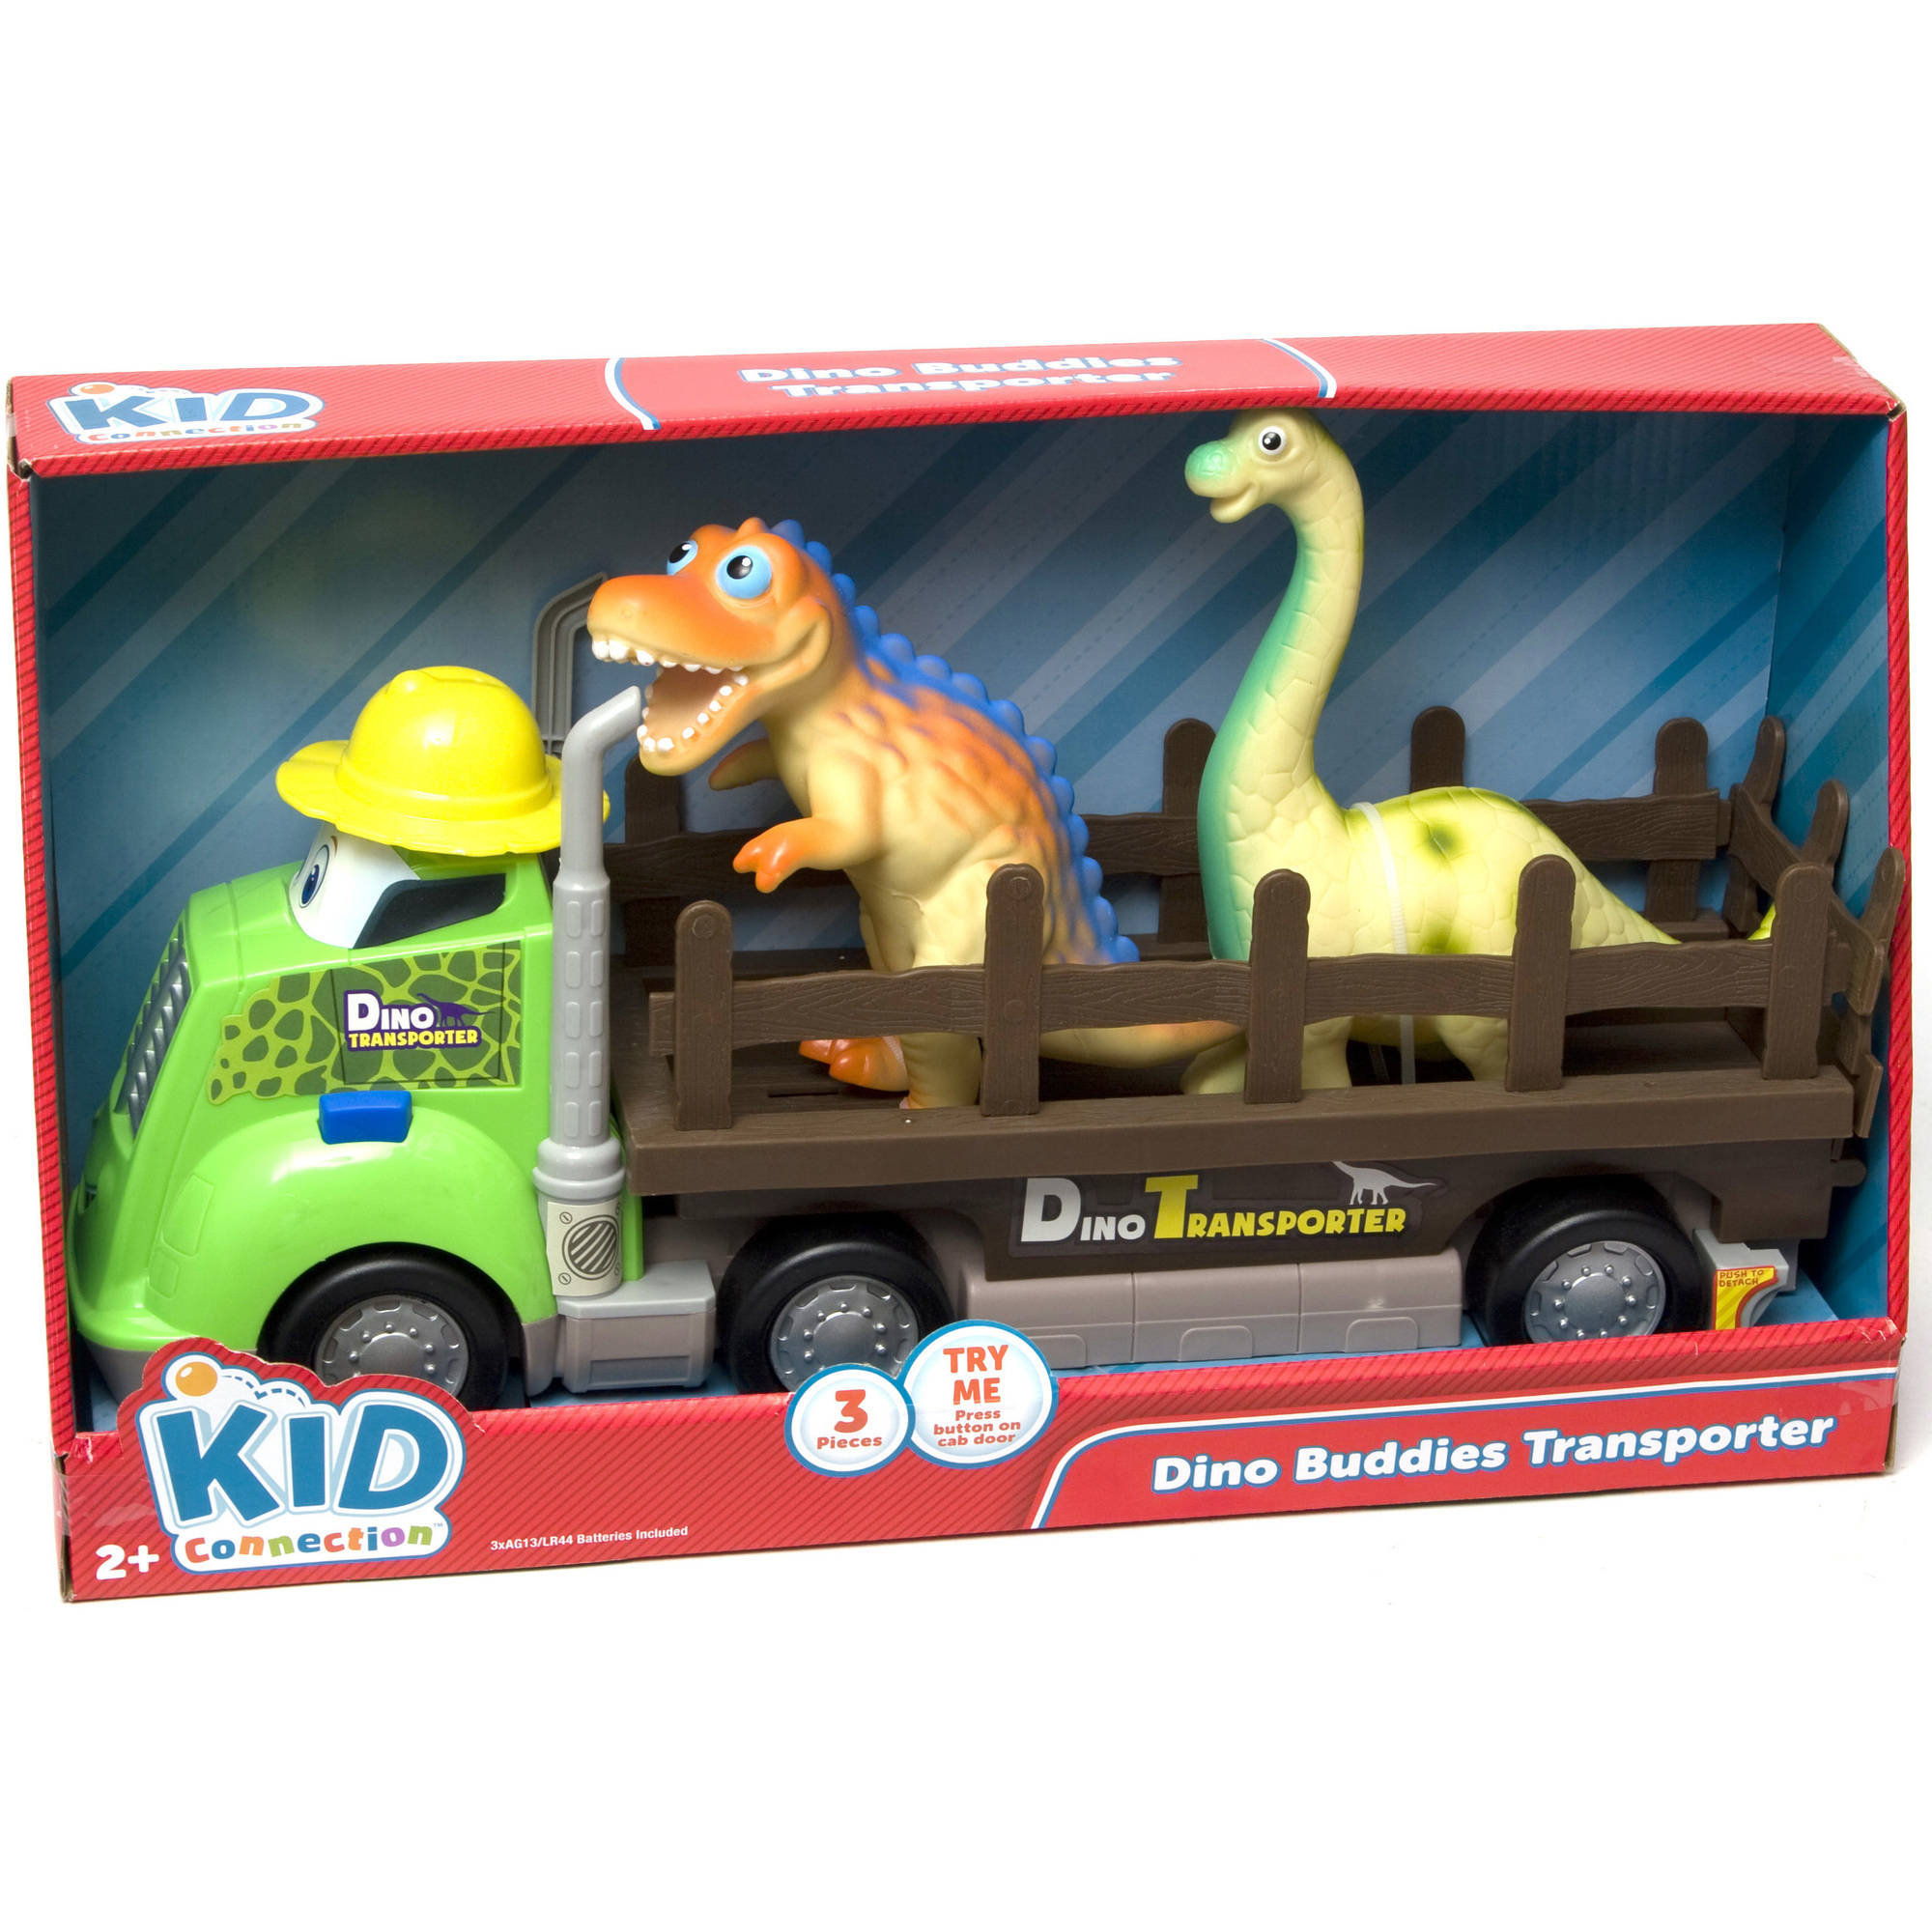 Dinosaur Truck Carry Case Transporter Toys With 6 dinosaurs and 7 compartments